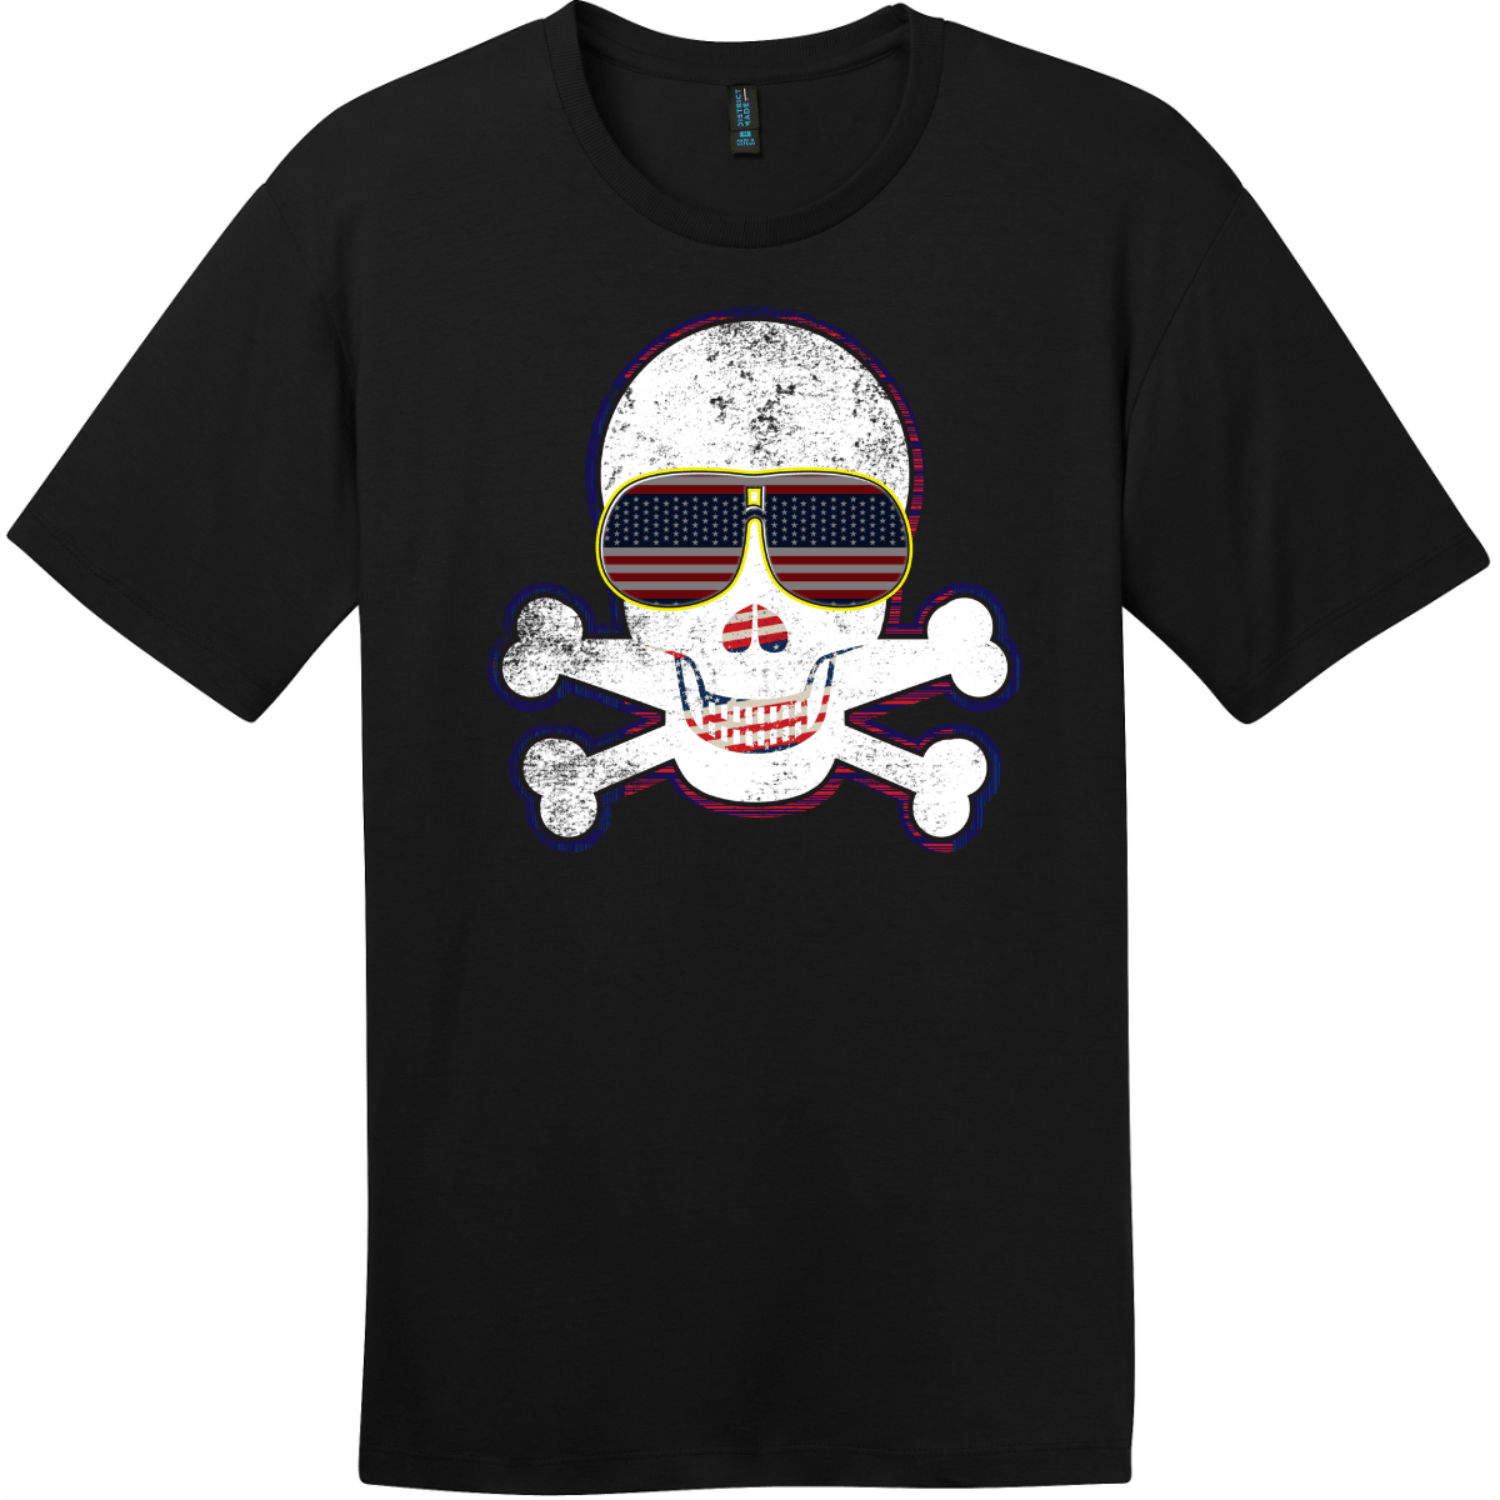 American Flag Sunglasses Retro Skull T-Shirt Jet Black District Perfect Weight Tee DT104